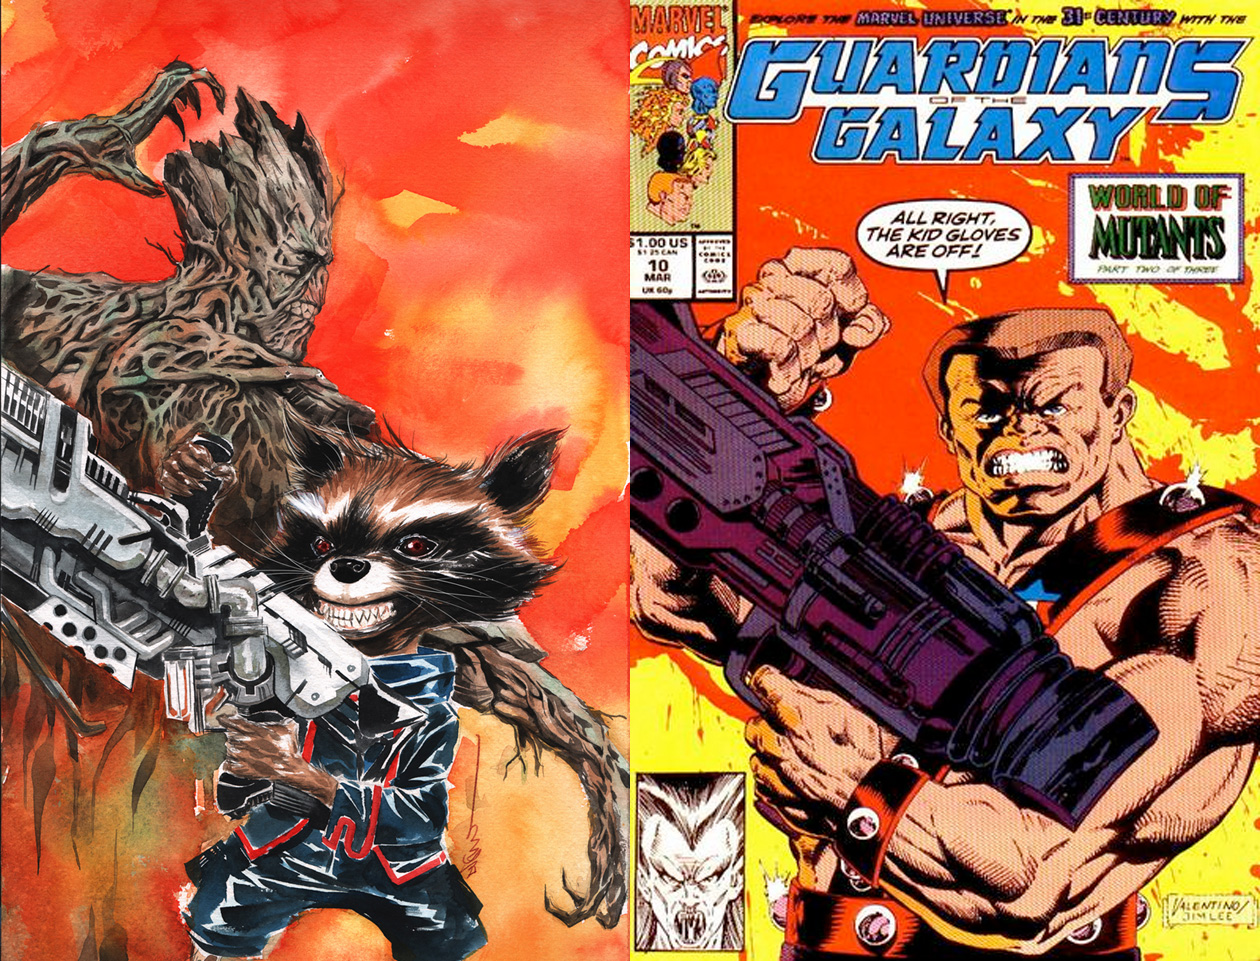 Guardians of the Galaxy #21 variant by Dustin Nguyen